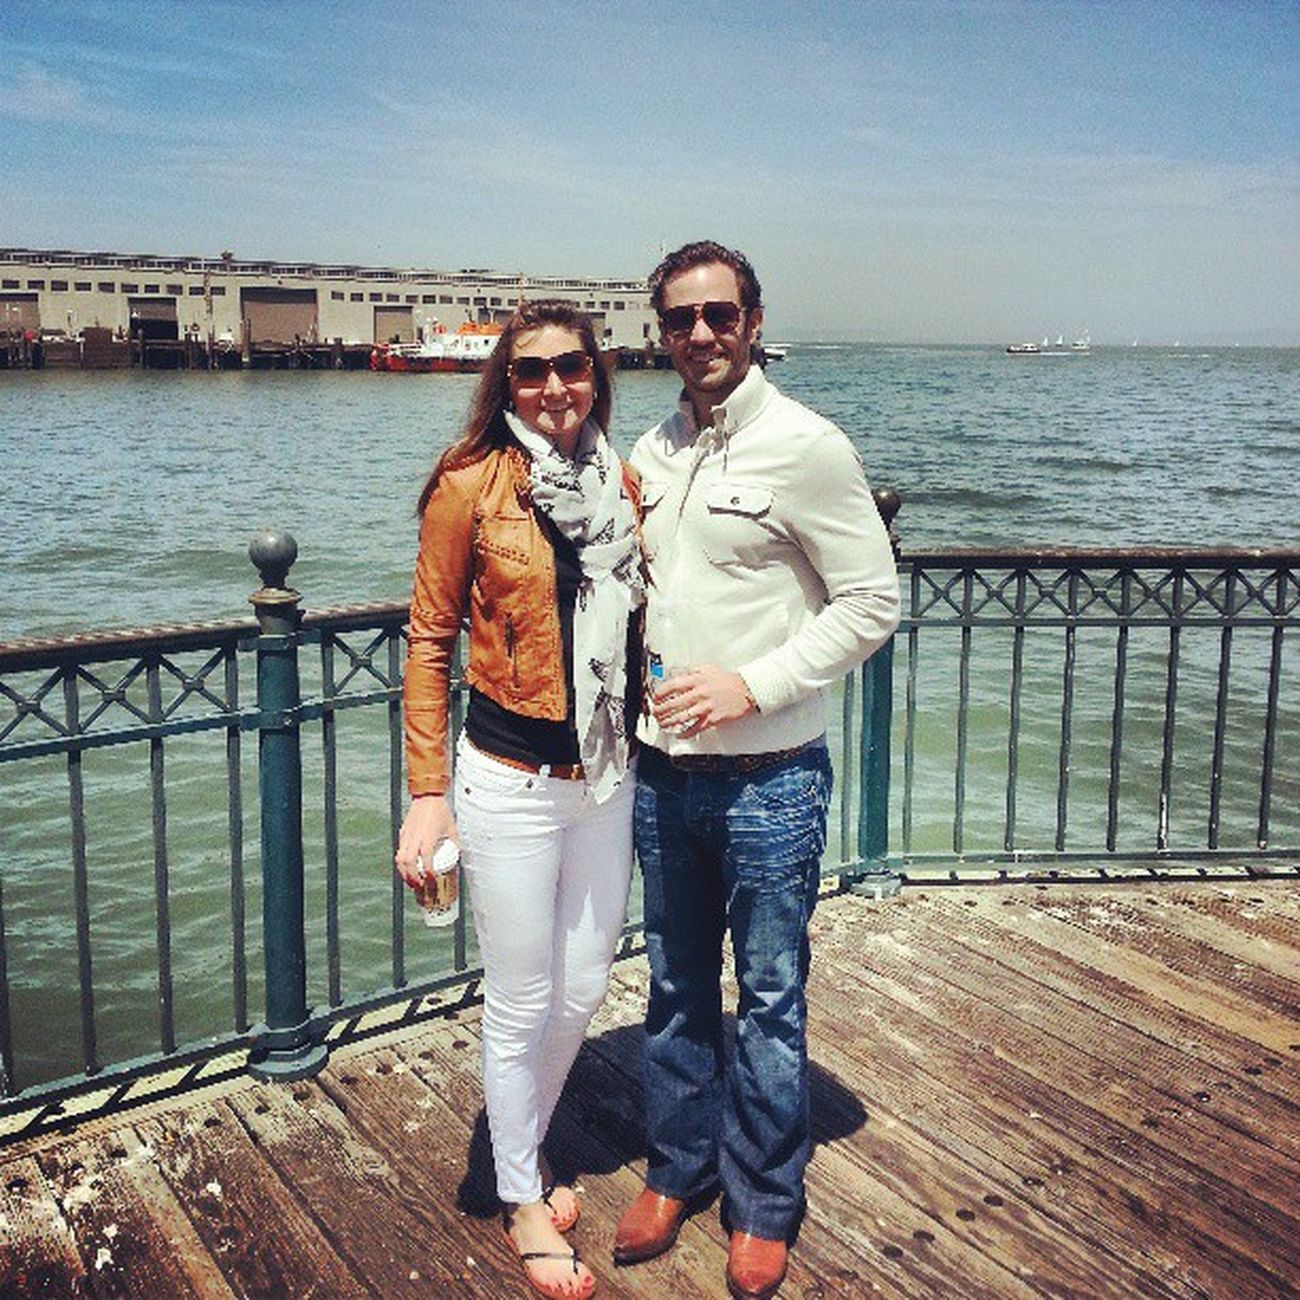 Little stroll in Sanfrancisco along Fishermanswharf - beautiful weather today!